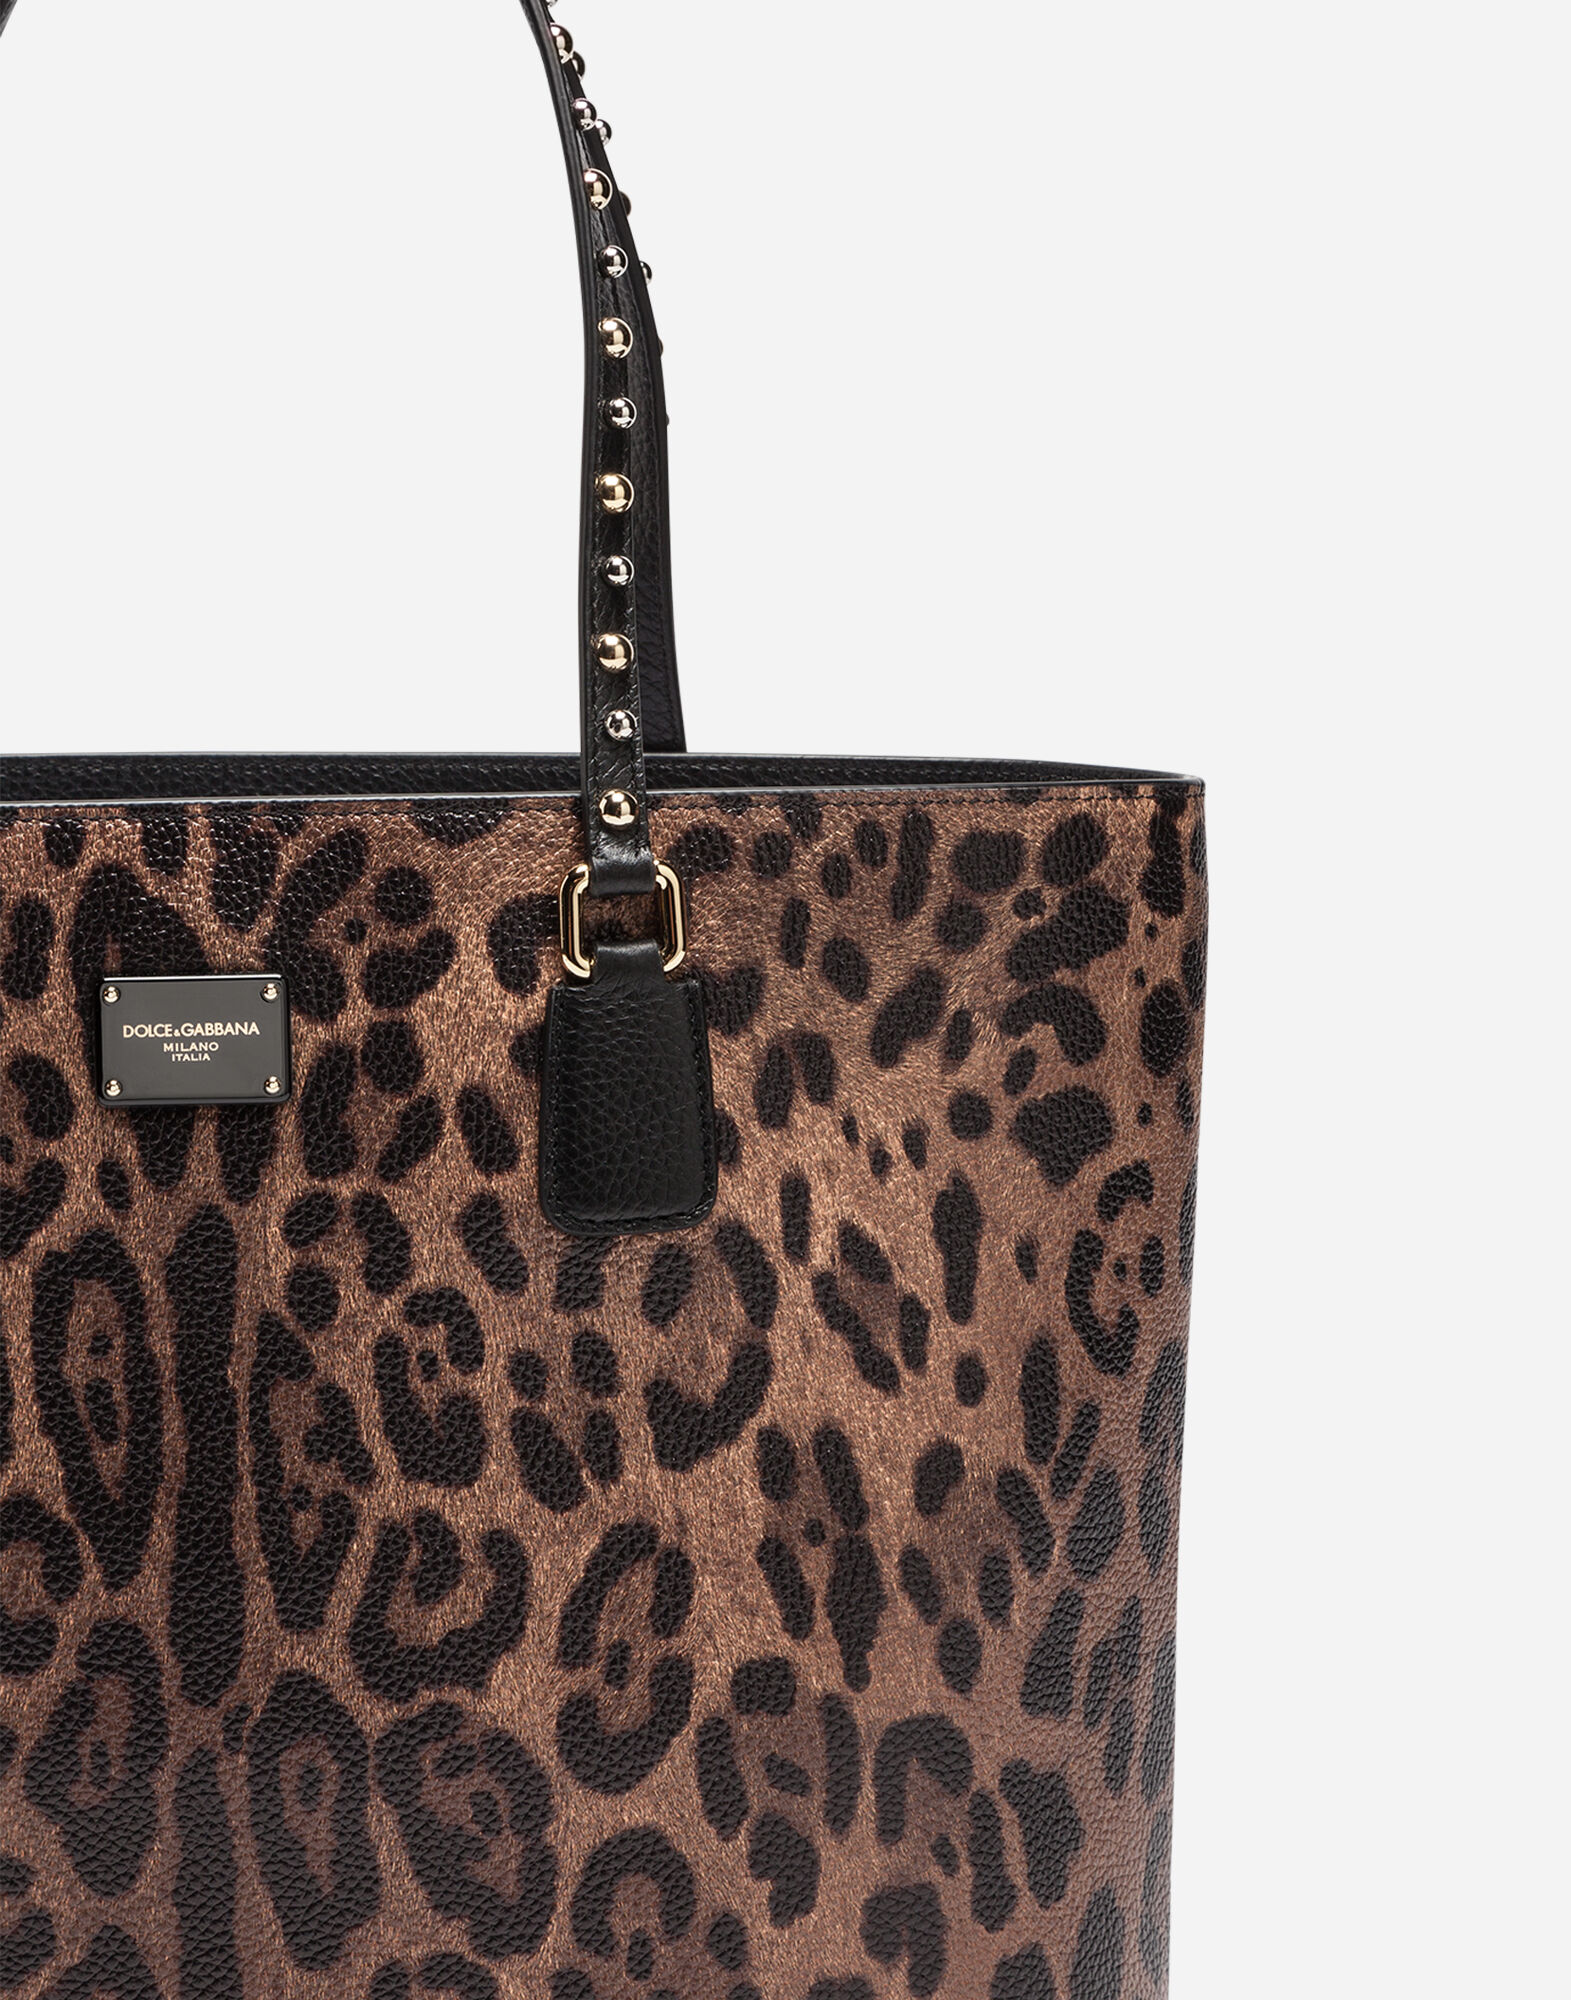 GLAM SHOPPER BAG IN PRINTED LEATHER